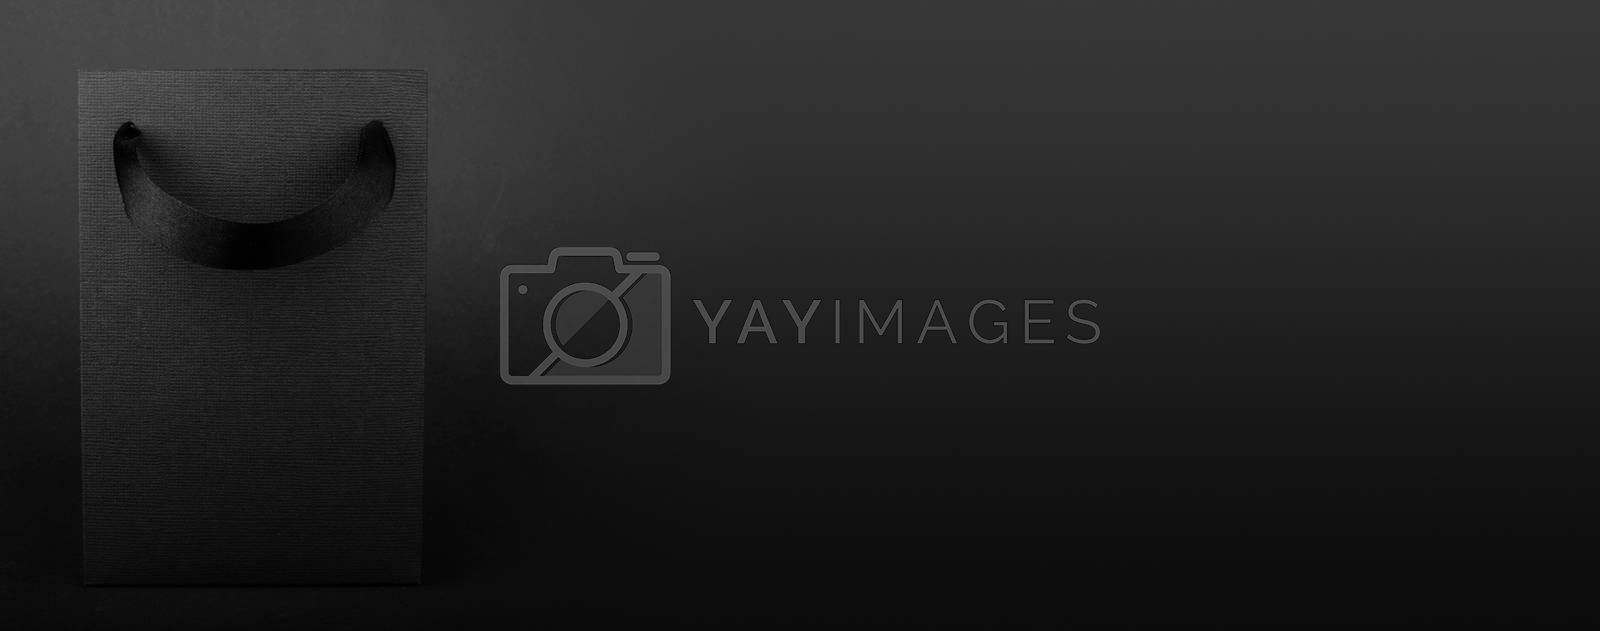 Black Friday blank empty paper bag with copy space for text and logo on dark background sale concept banner backgrounds